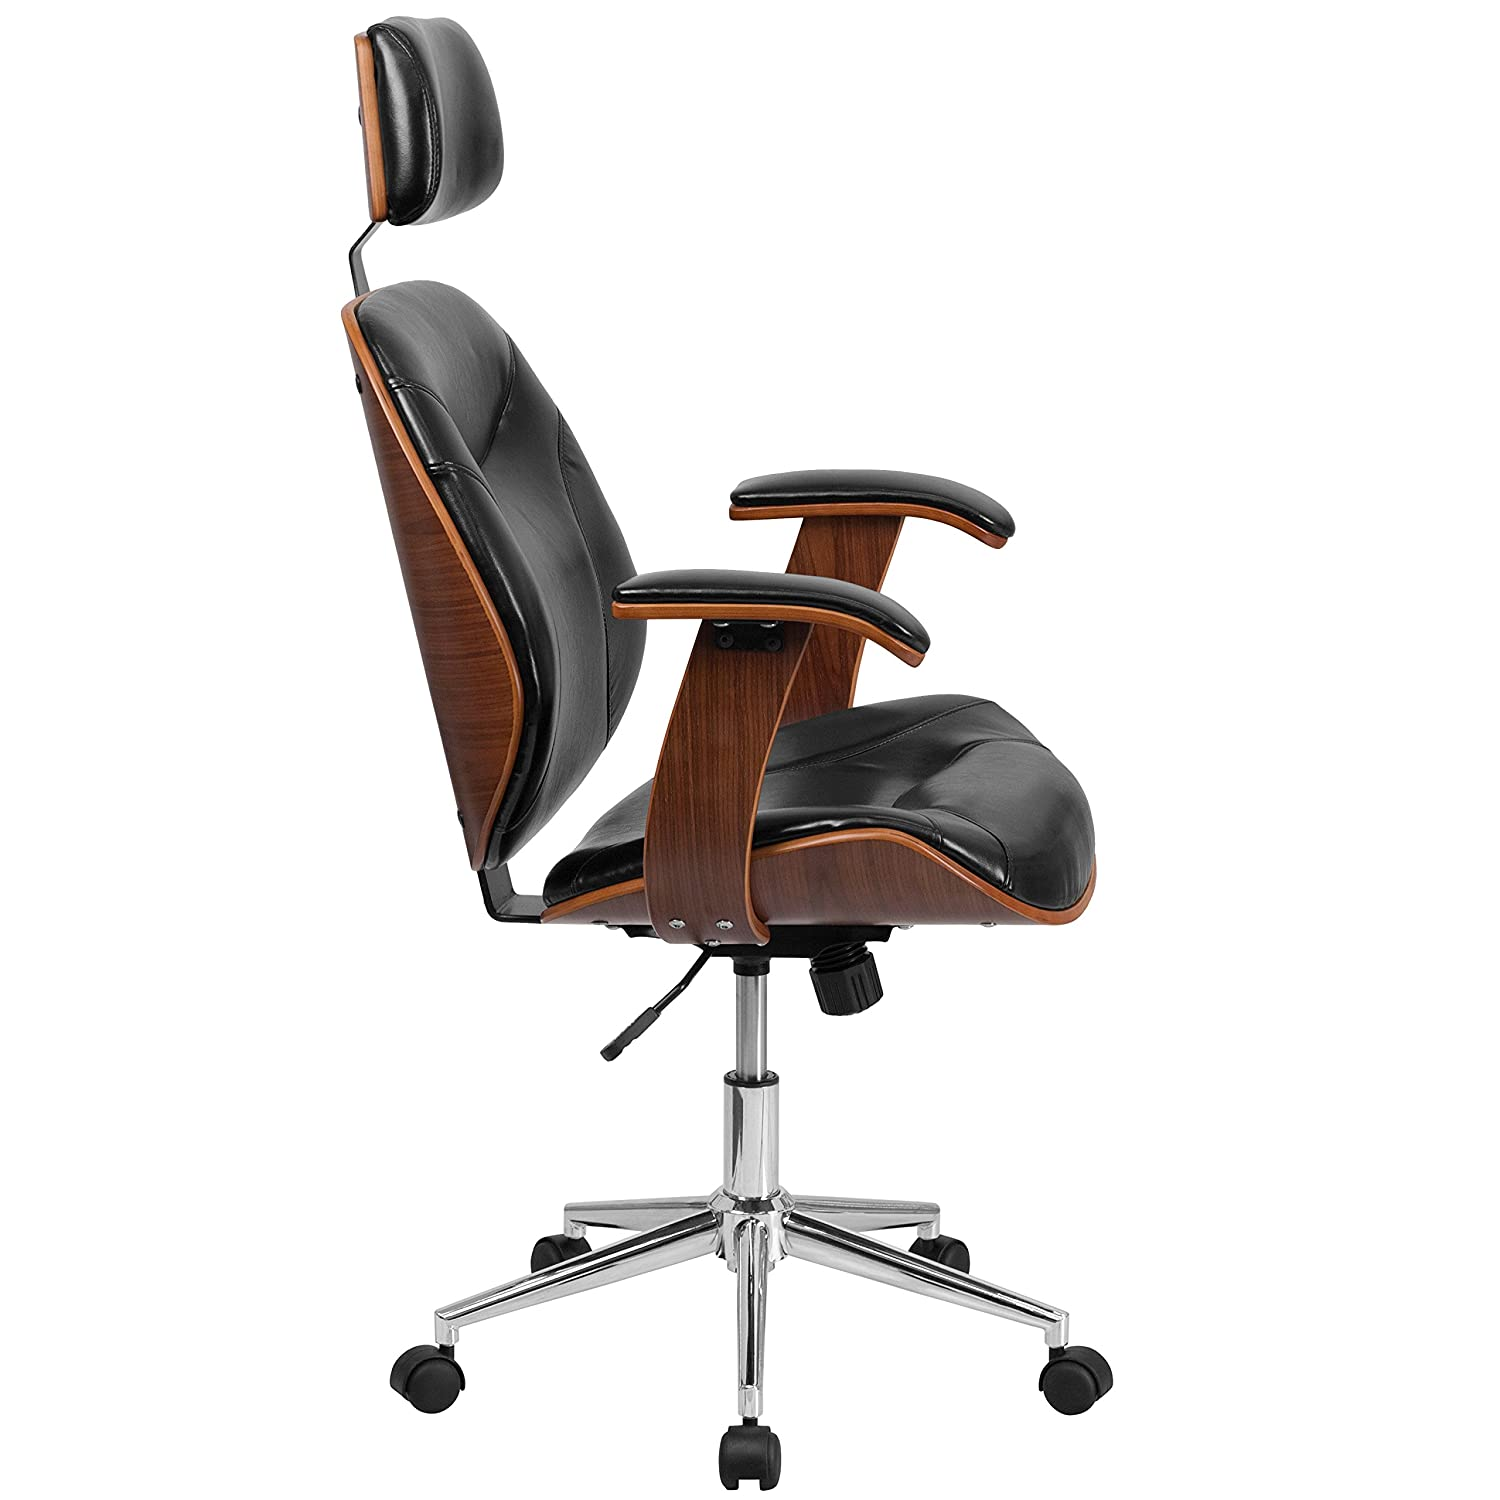 Amazon.com Flash Furniture High Back Black Leather Executive Wood Swivel Chair with Arms Kitchen u0026 Dining  sc 1 st  Amazon.com & Amazon.com: Flash Furniture High Back Black Leather Executive Wood ...